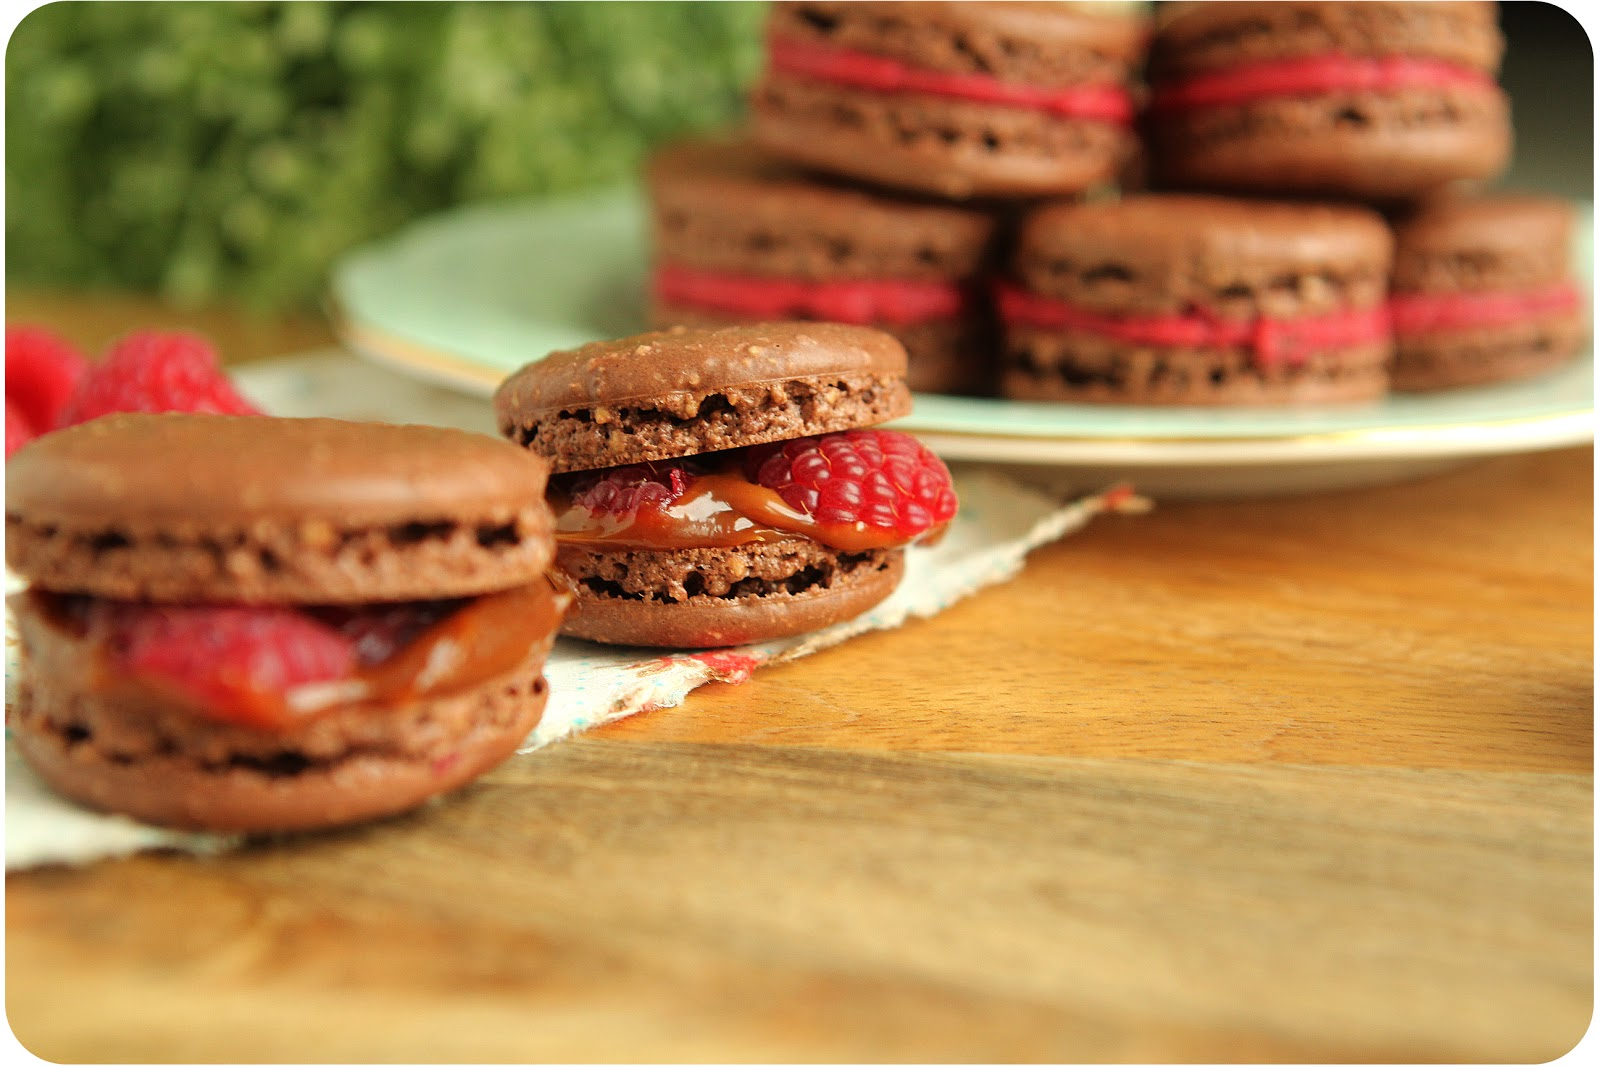 Dulce Delight: Chocolate macarons with dulce de leche